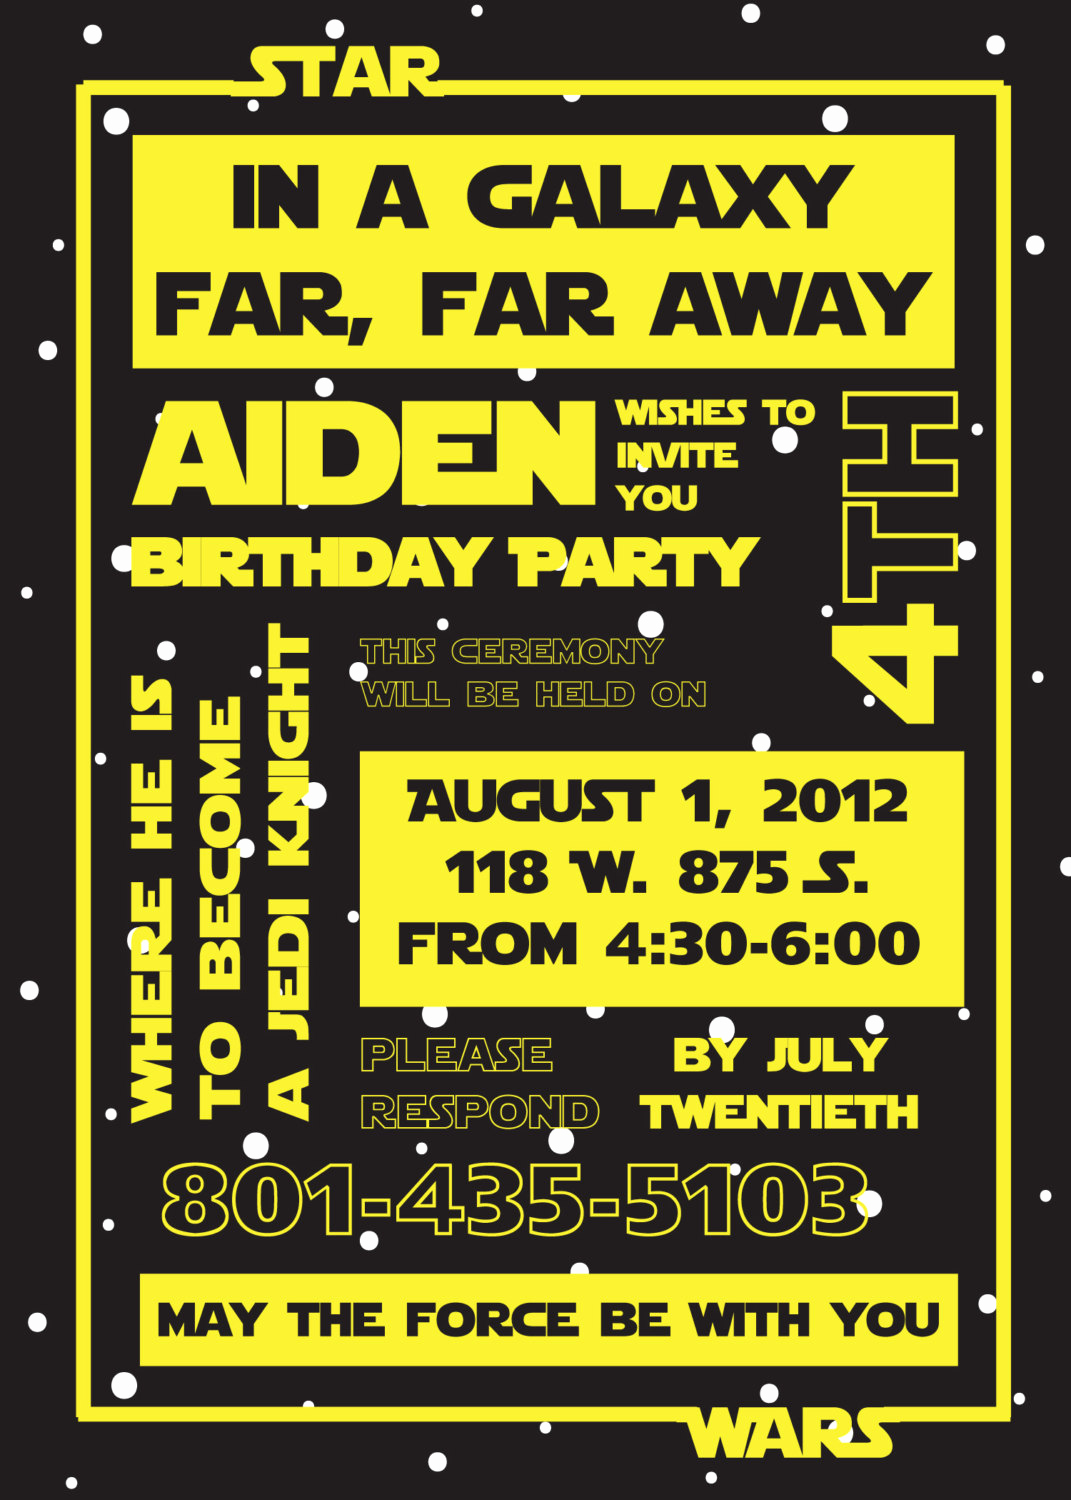 Star Wars Party Invitation Template Inspirational Free Star Wars Birthday Party Invitations Templates